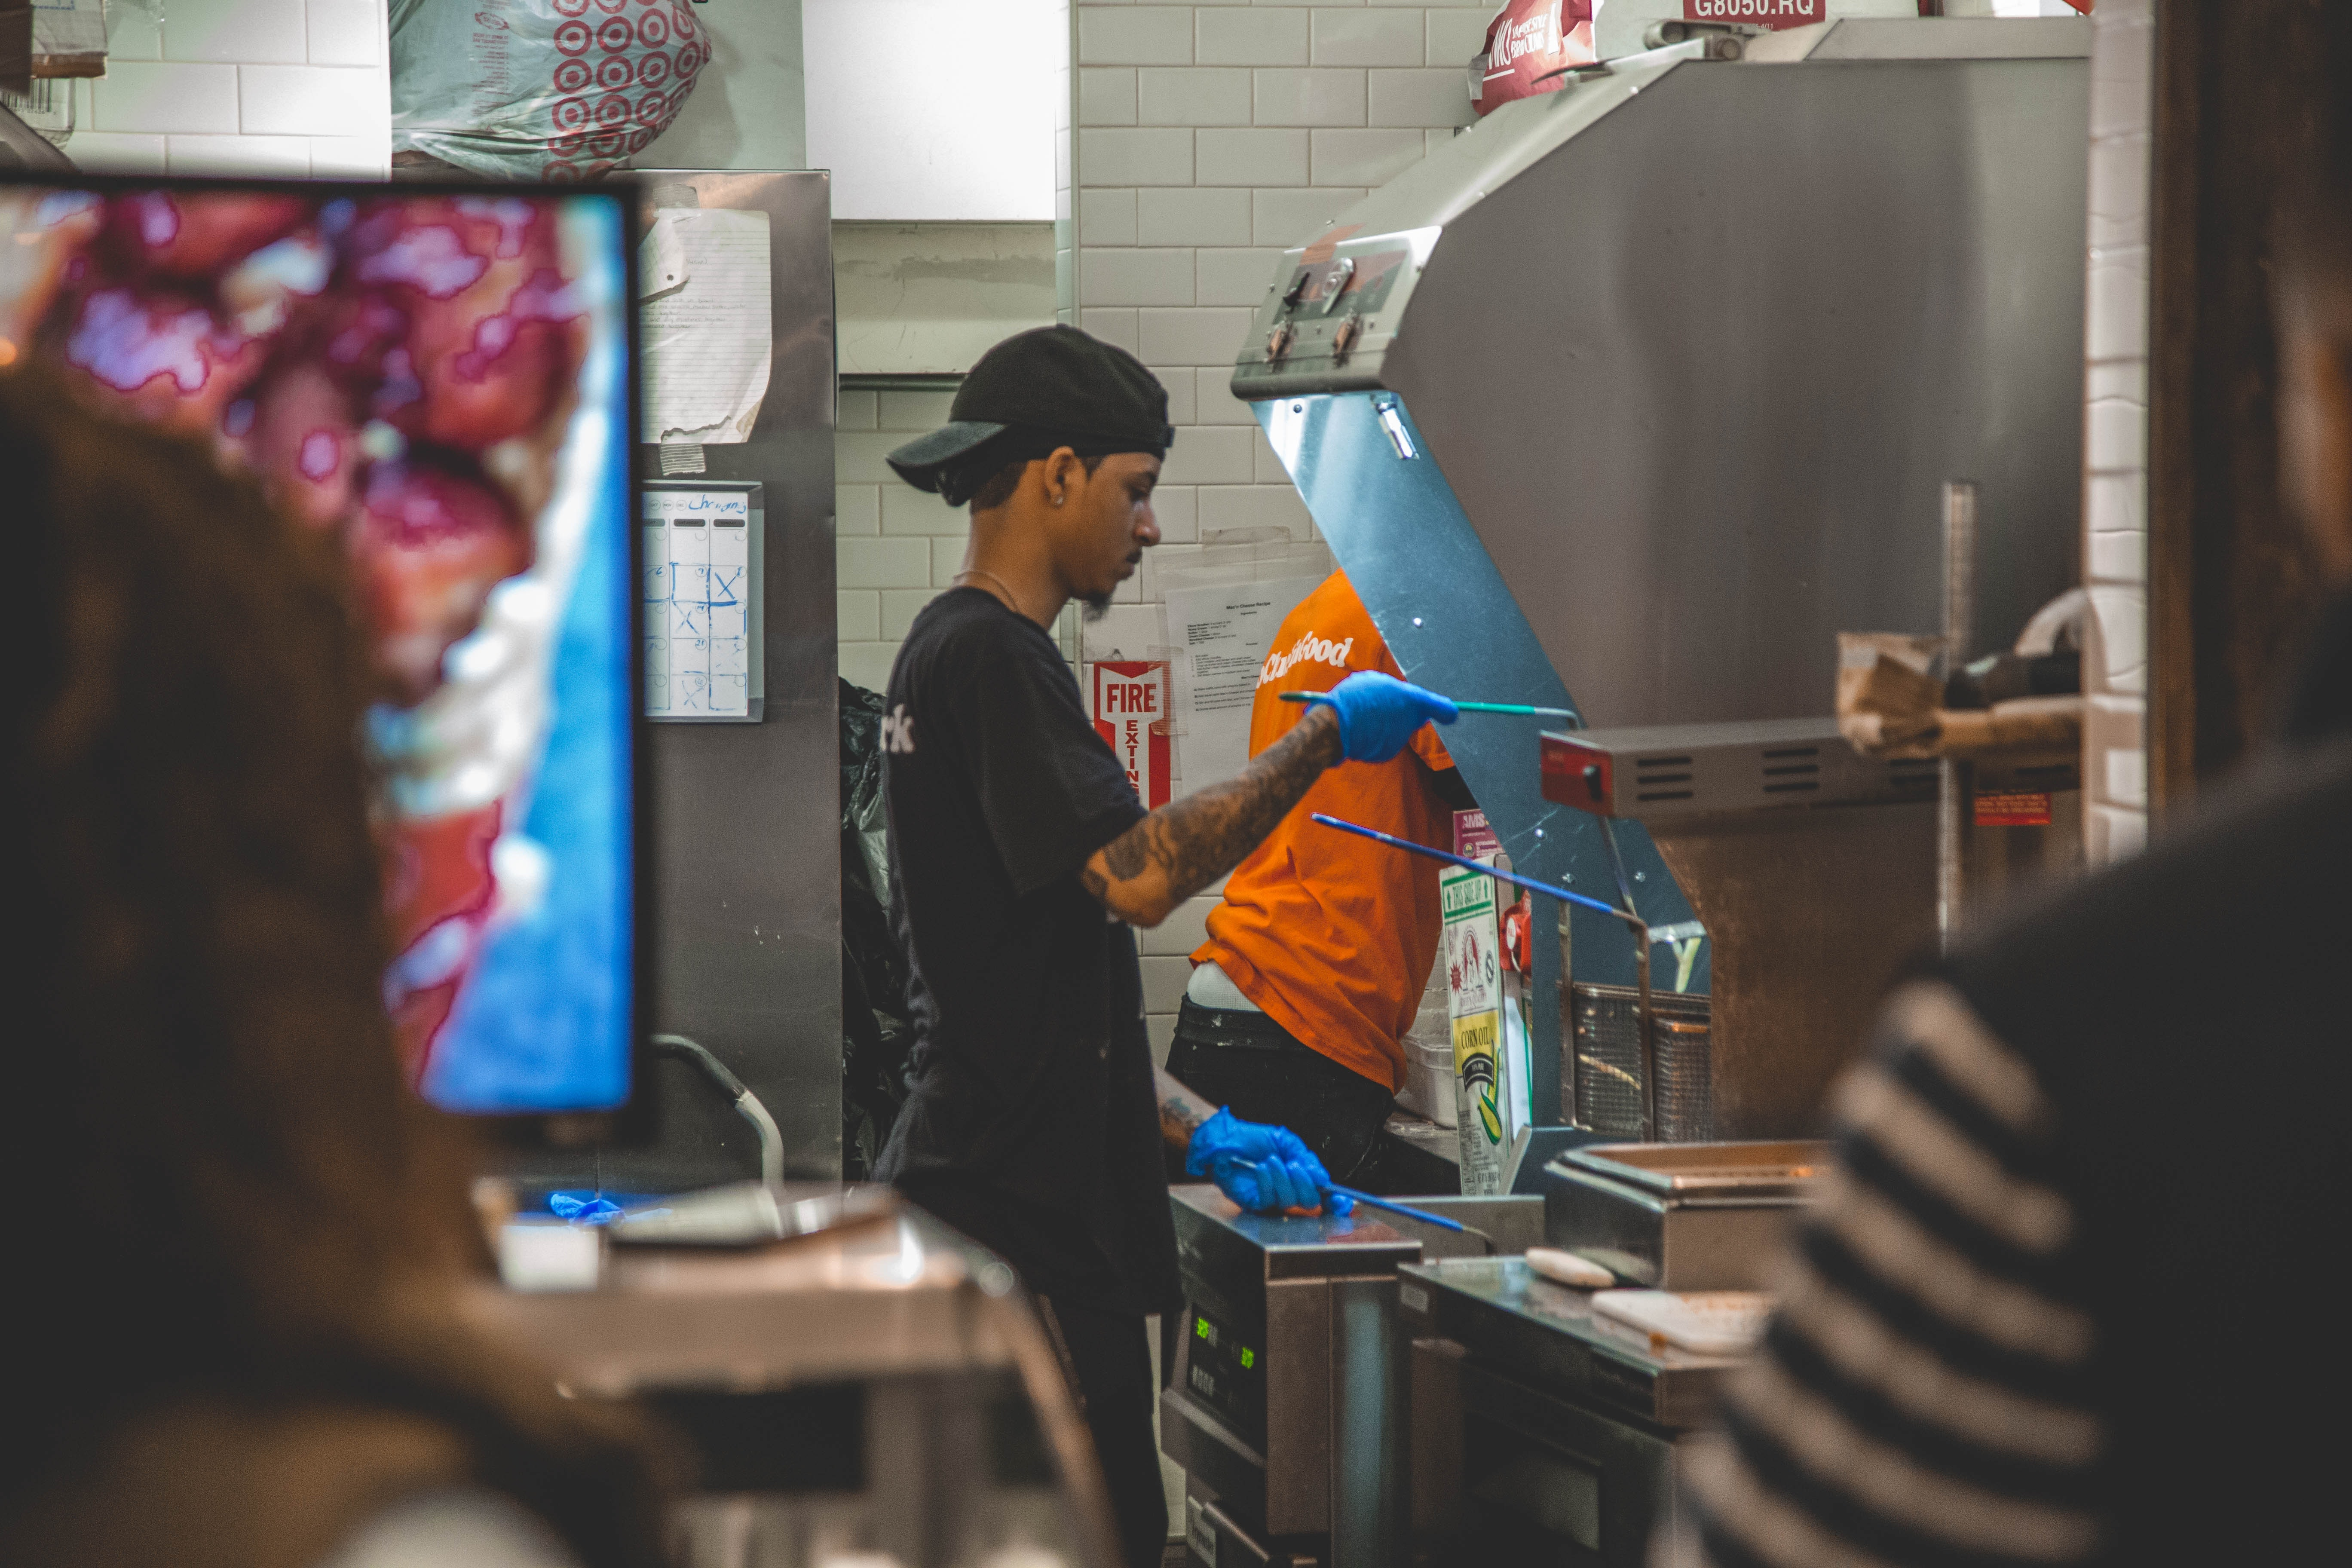 3 Groups of People Disproportionately Harmed by Minimum Wage Laws